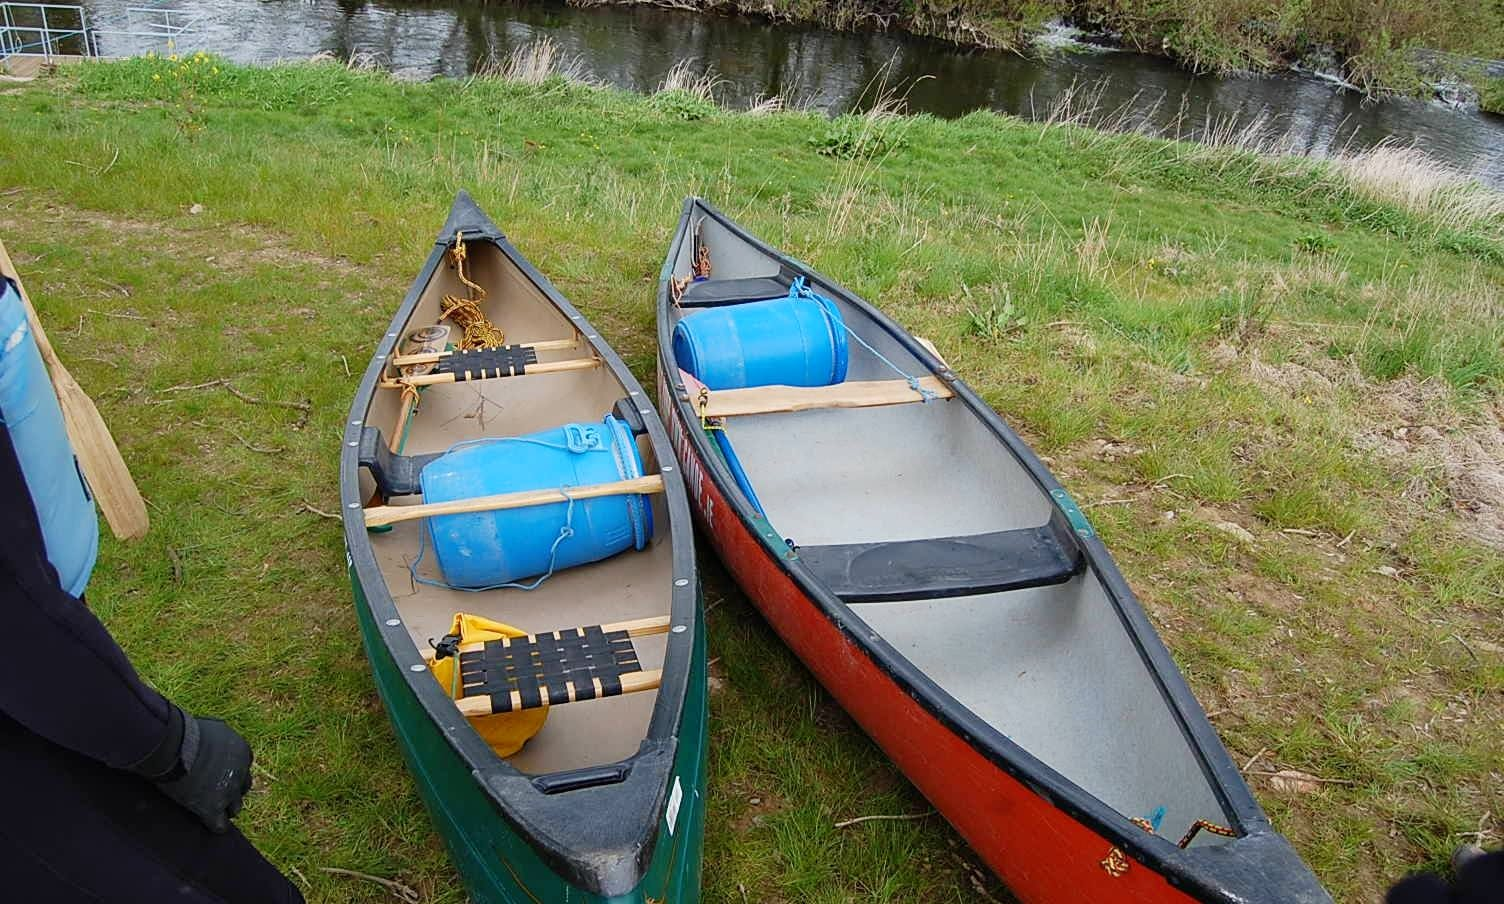 Paddle Your Own Canoe in County Carlow, Ireland